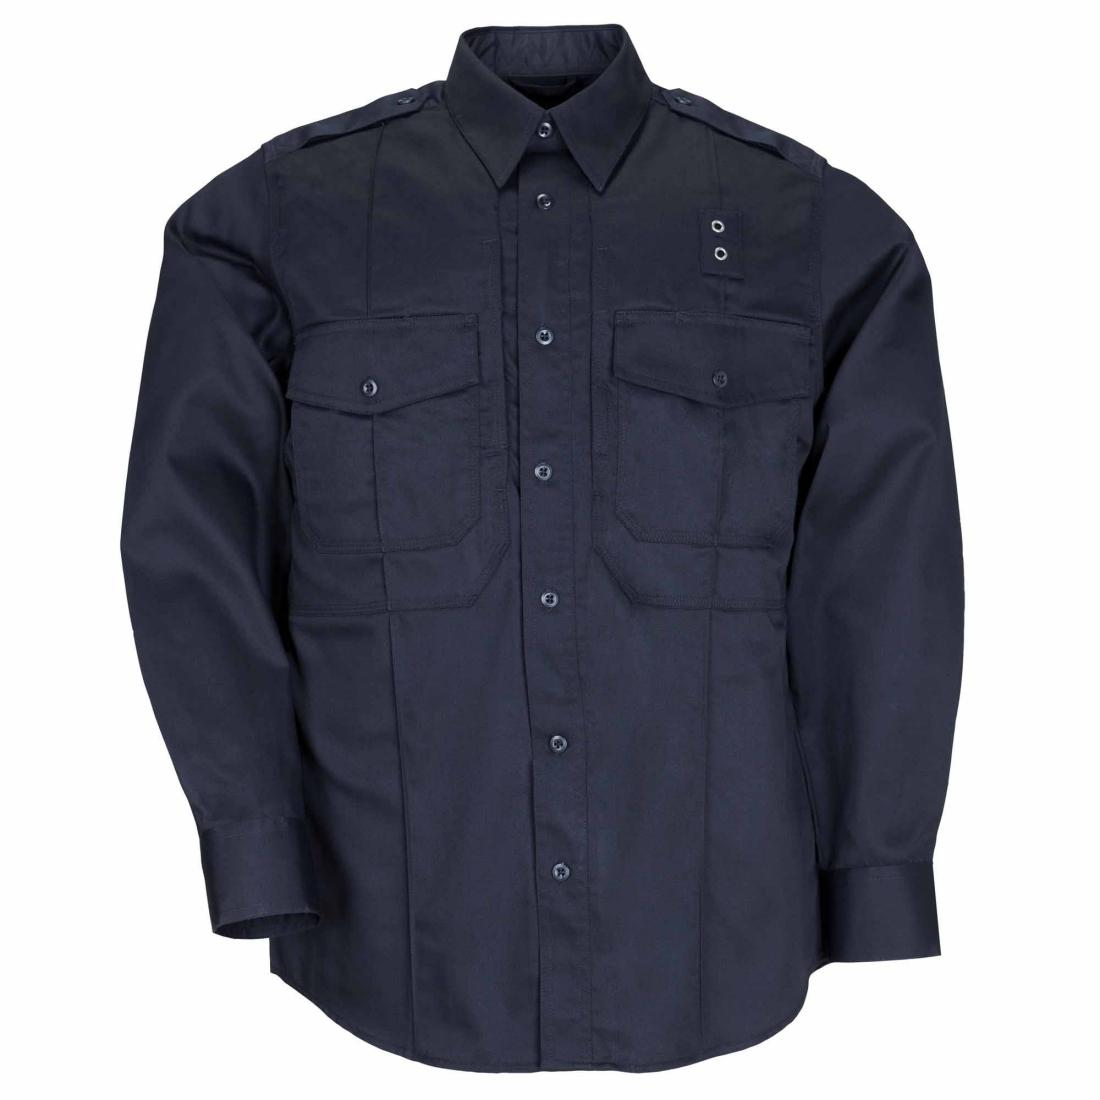 5.11 Tactical 72366 Men Taclite PDU Class- B Long Sleeve Shirt Midnight Navy Short - Small